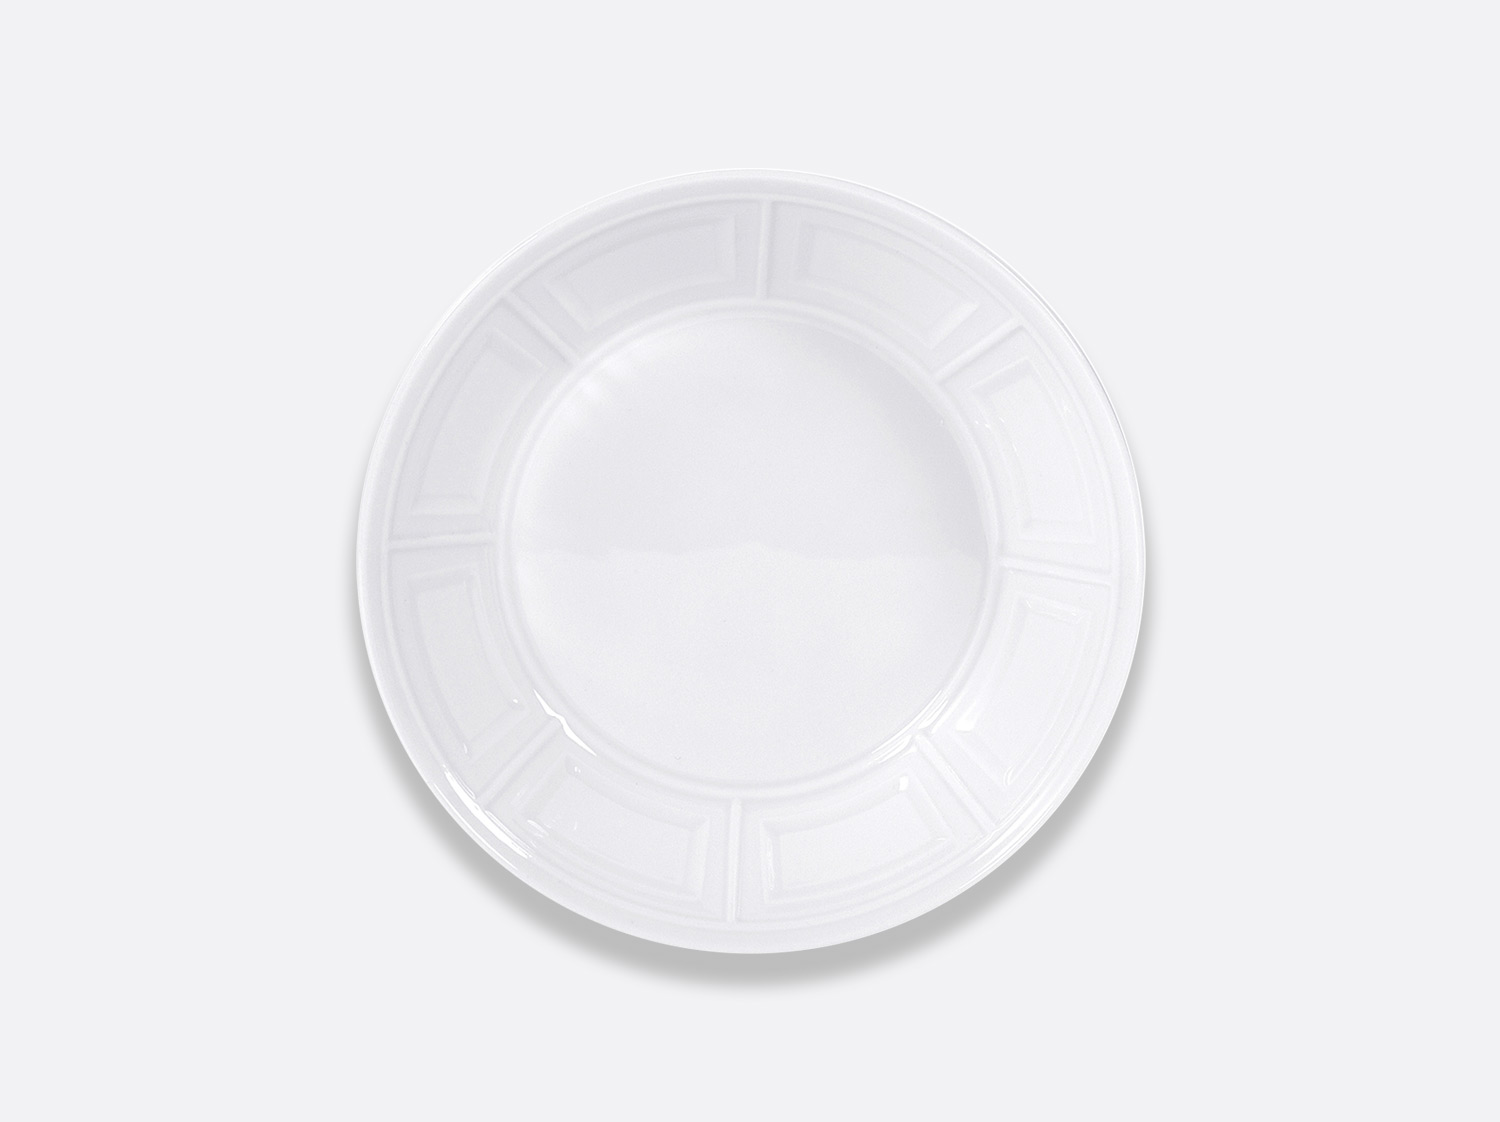 Assiette creuse 19 cm en porcelaine de la collection Naxos Bernardaud